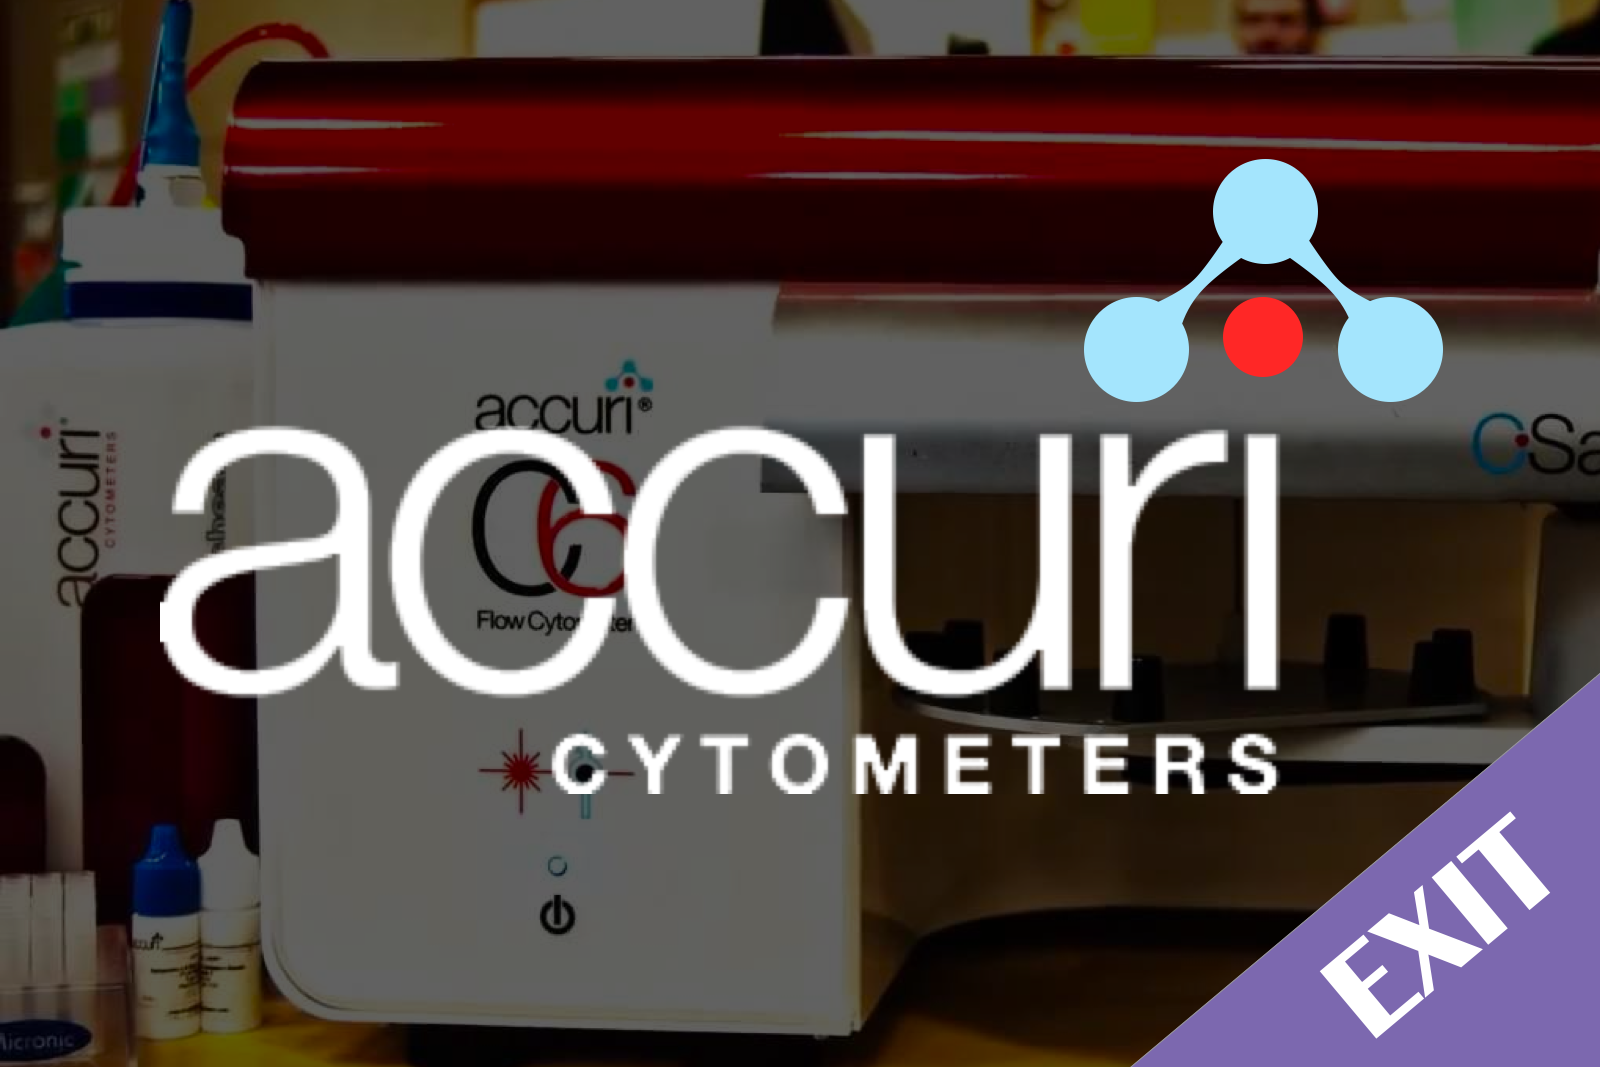 The BD Accuri platform enables enhanced sensitivity, reliability and capabilities that bring flow cytometry even more within reach for new and experienced flow cytometry researchers.